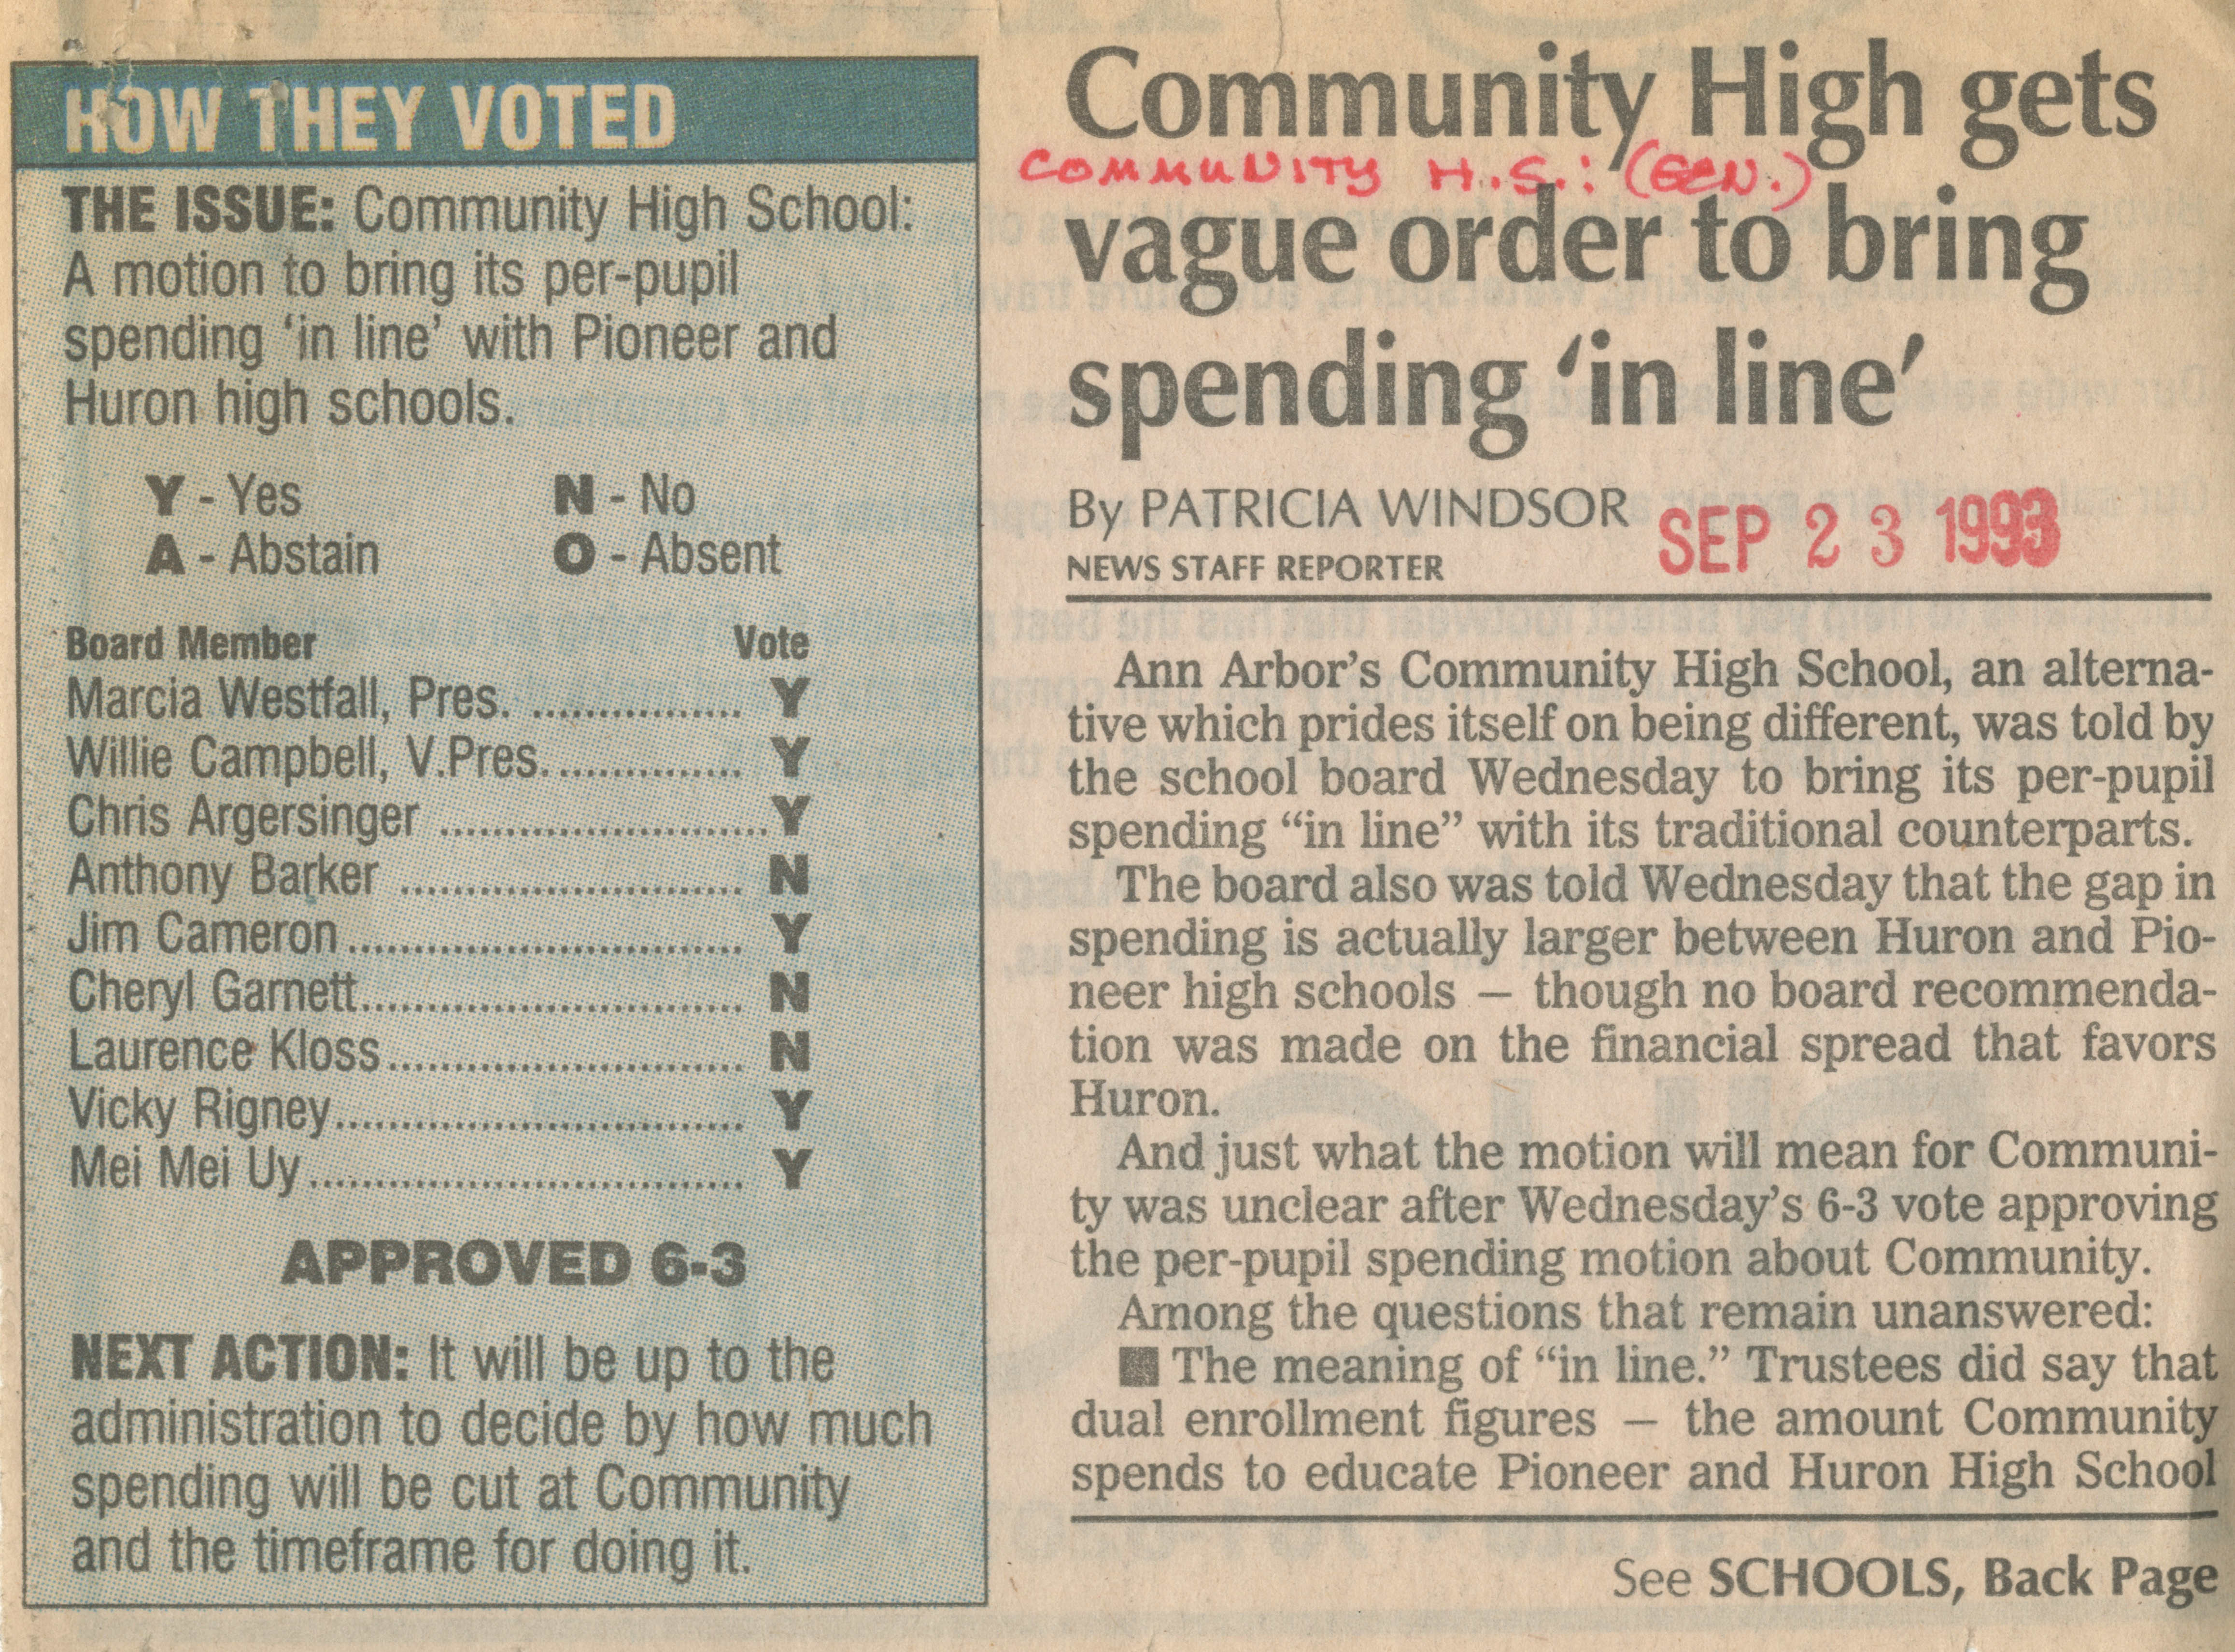 Community High gets vague order to bring spending 'in line' image